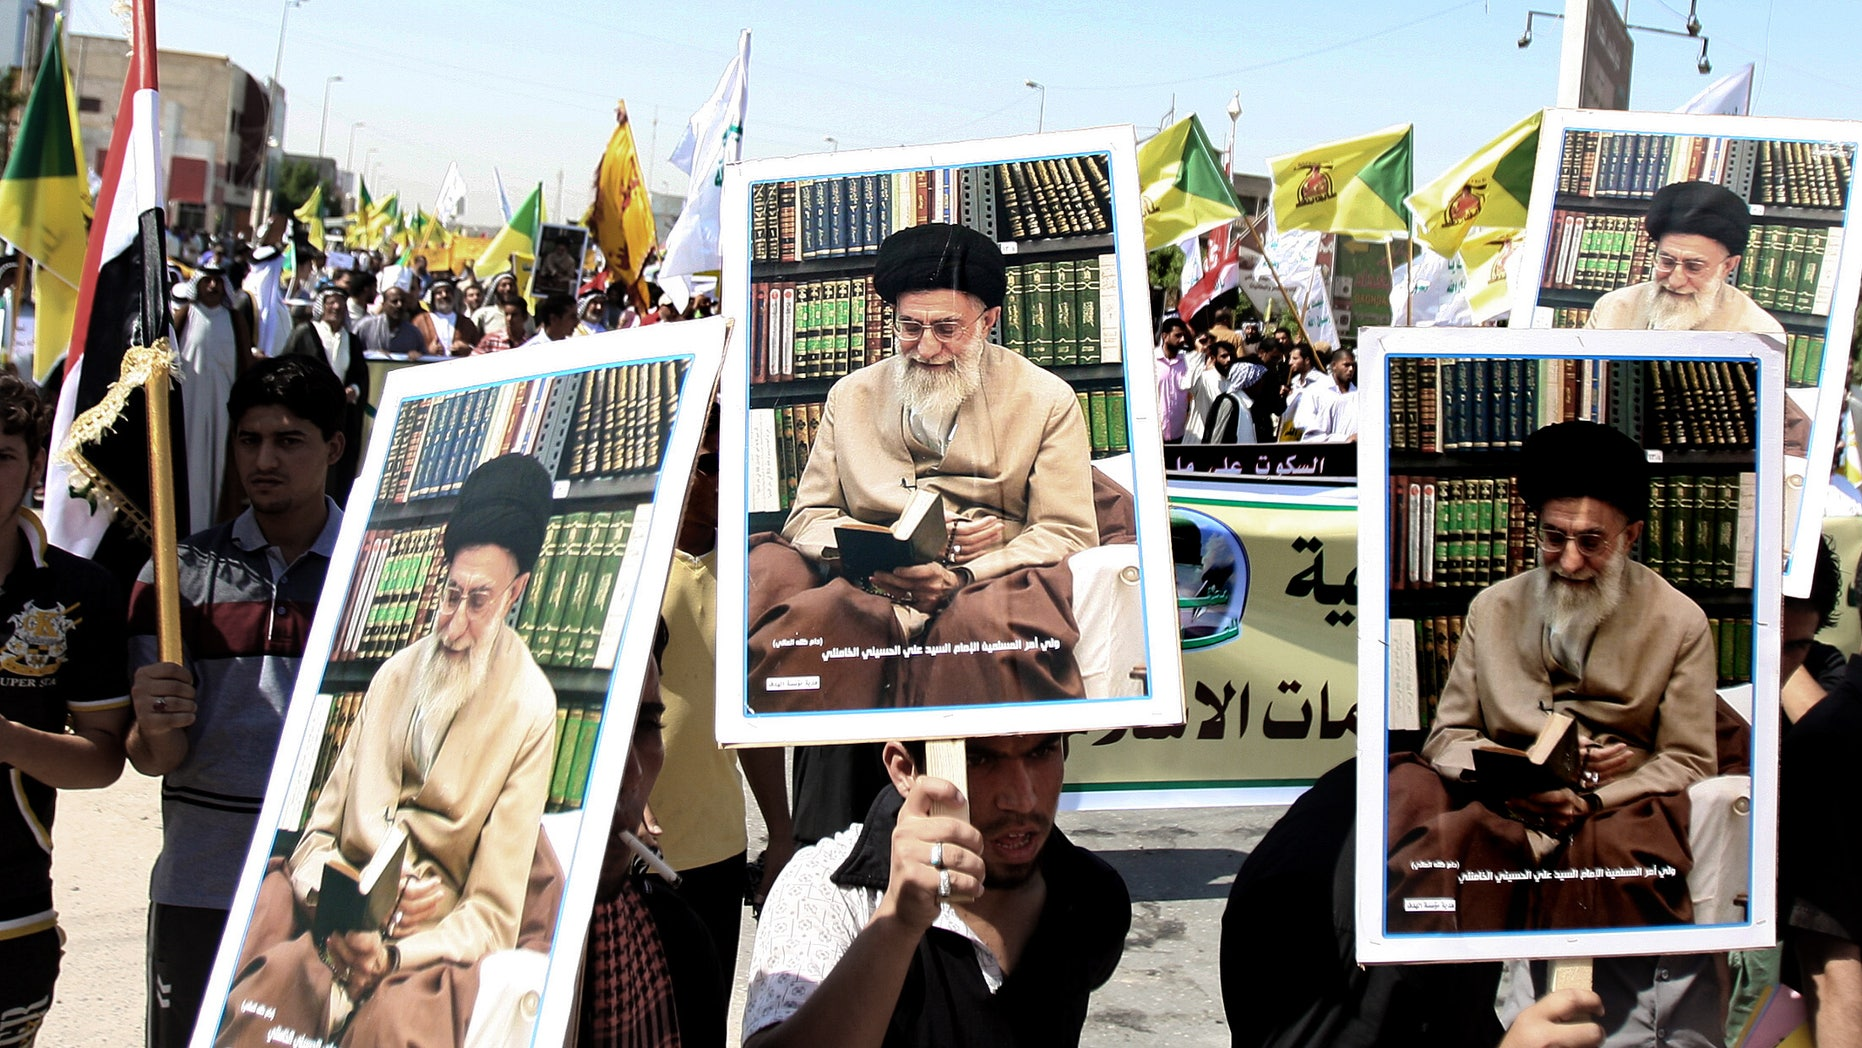 Sept. 21, 2012: In this photo, Iraqis chant slogans as they hold posters of Iran's supreme leader Ayatollah Khamenei during a protest in Basra, 340 miles southeast of Baghdad, Iraq, as part of widespread anger across the Muslim world about a film ridiculing Islam's Prophet Muhammad.